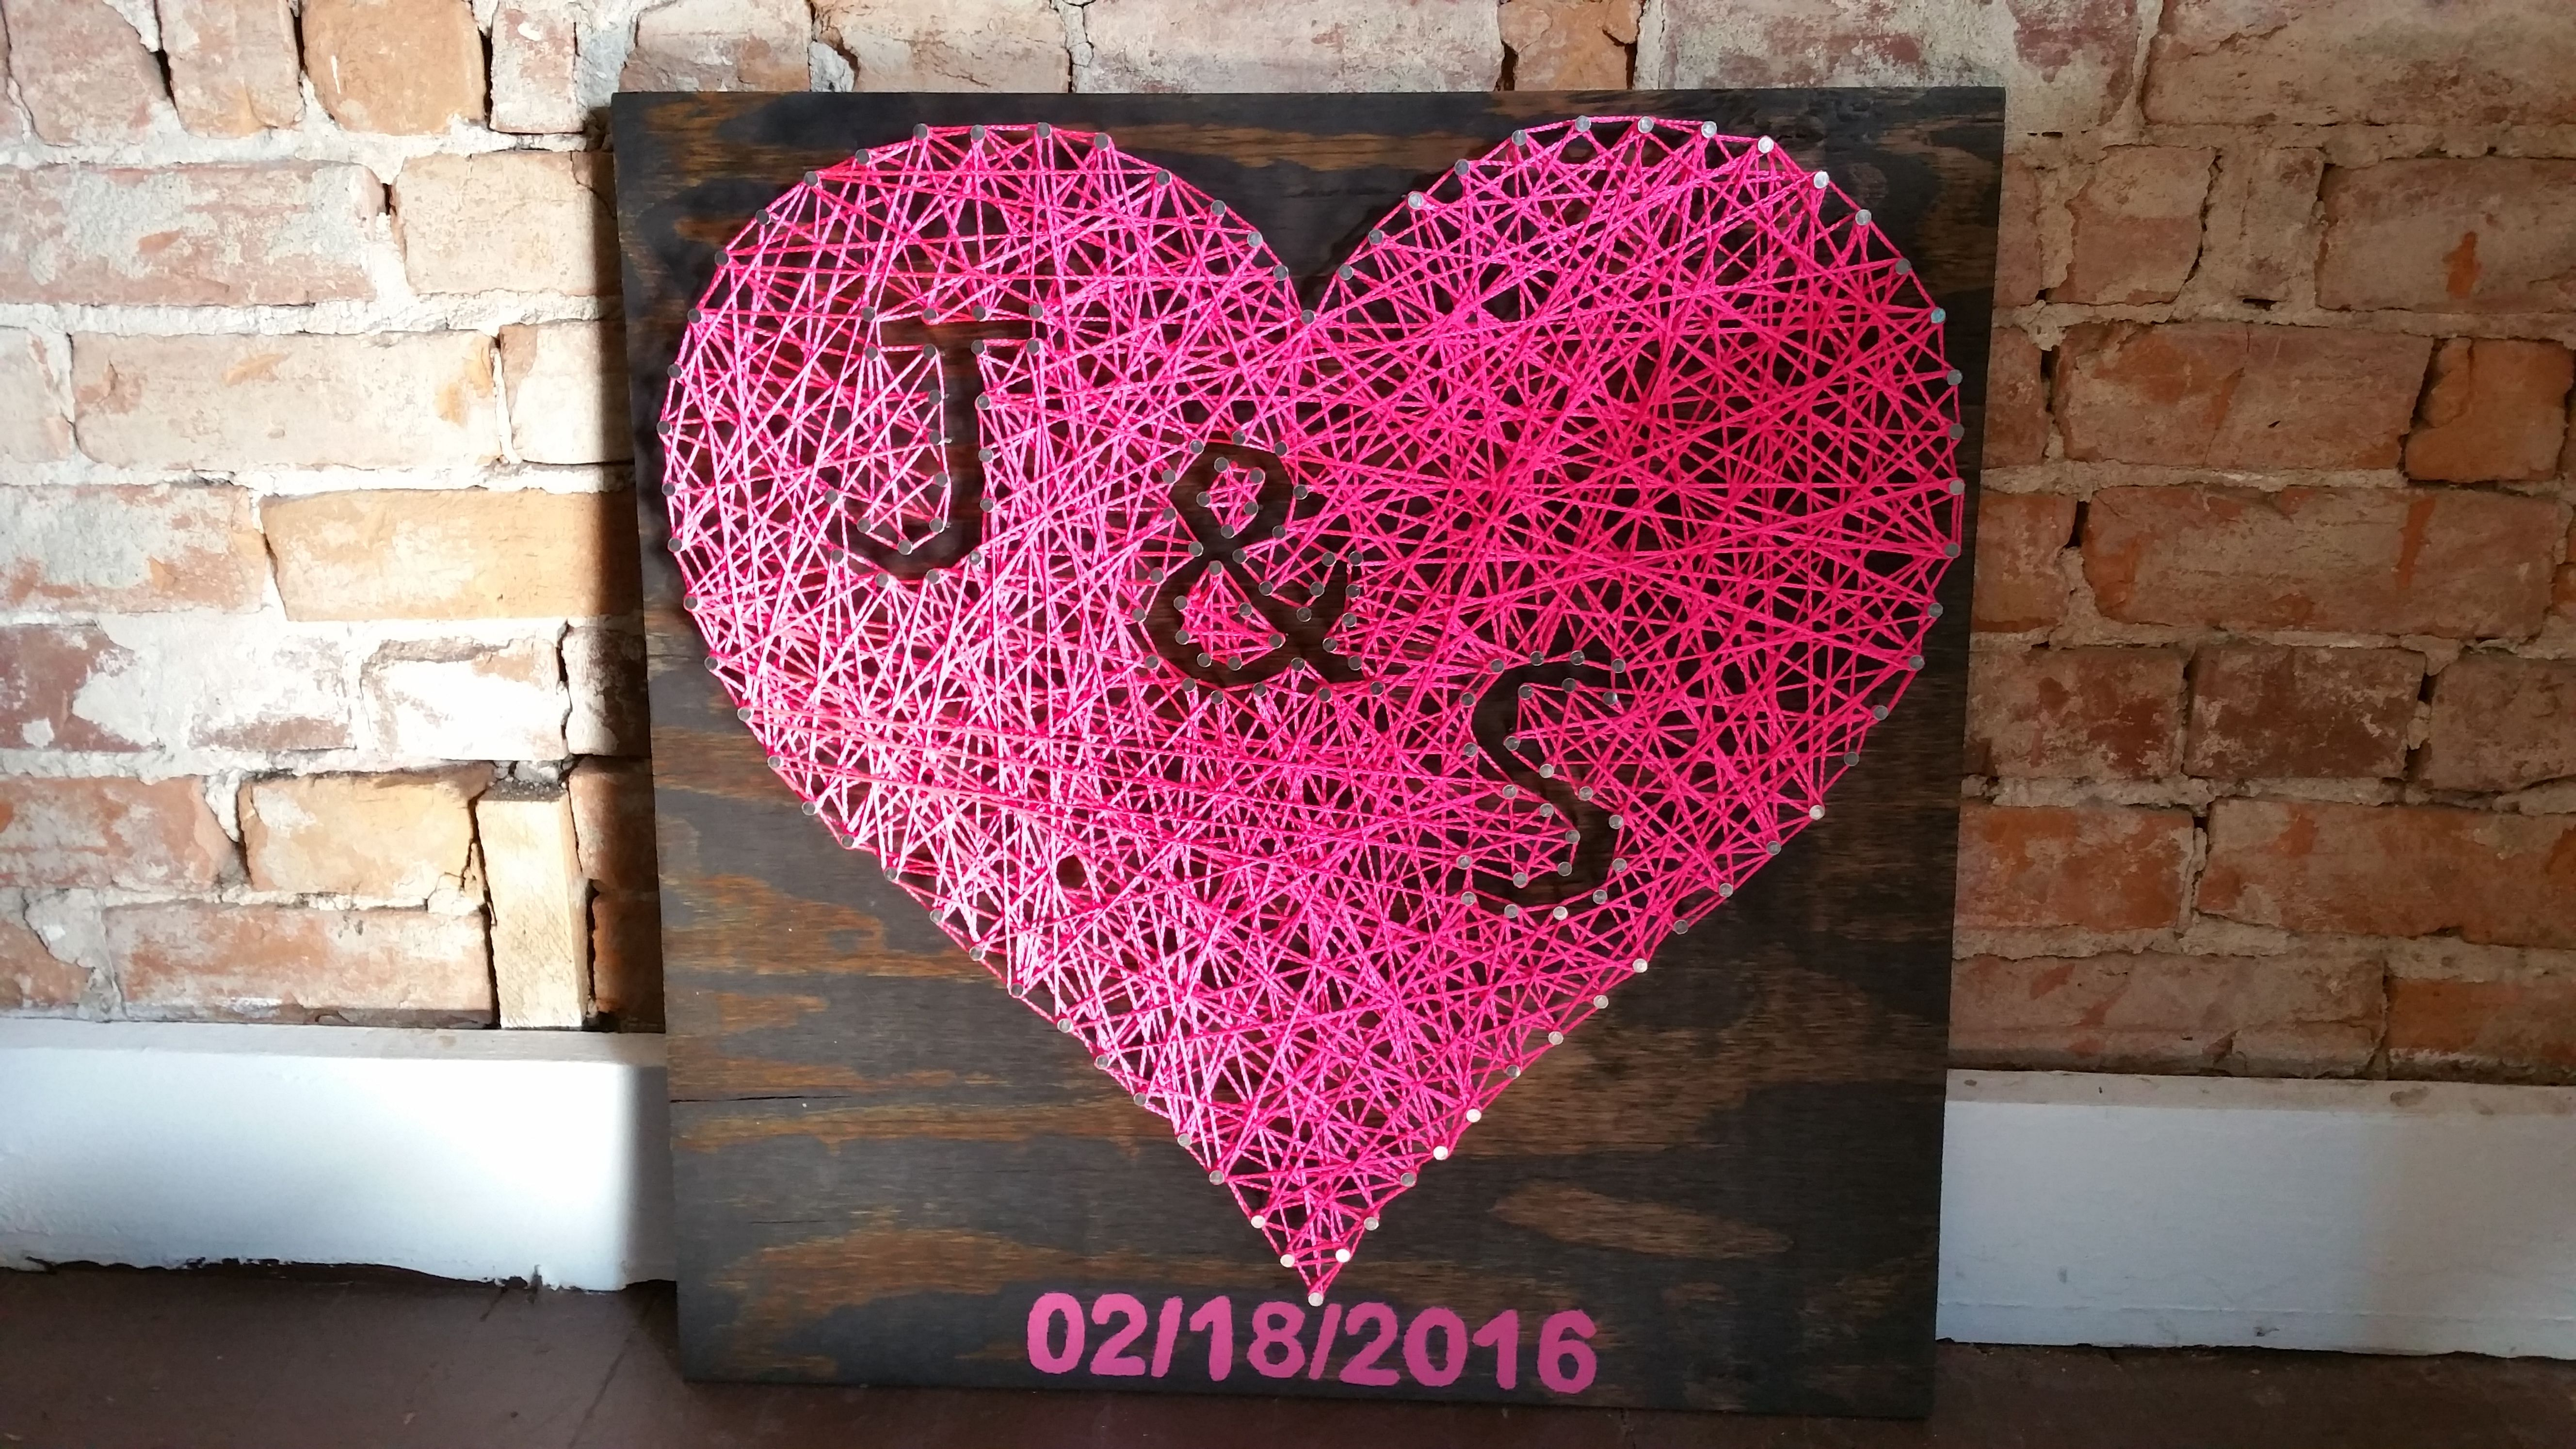 I made an anniversary gift for my girlfriend • /r/DIY